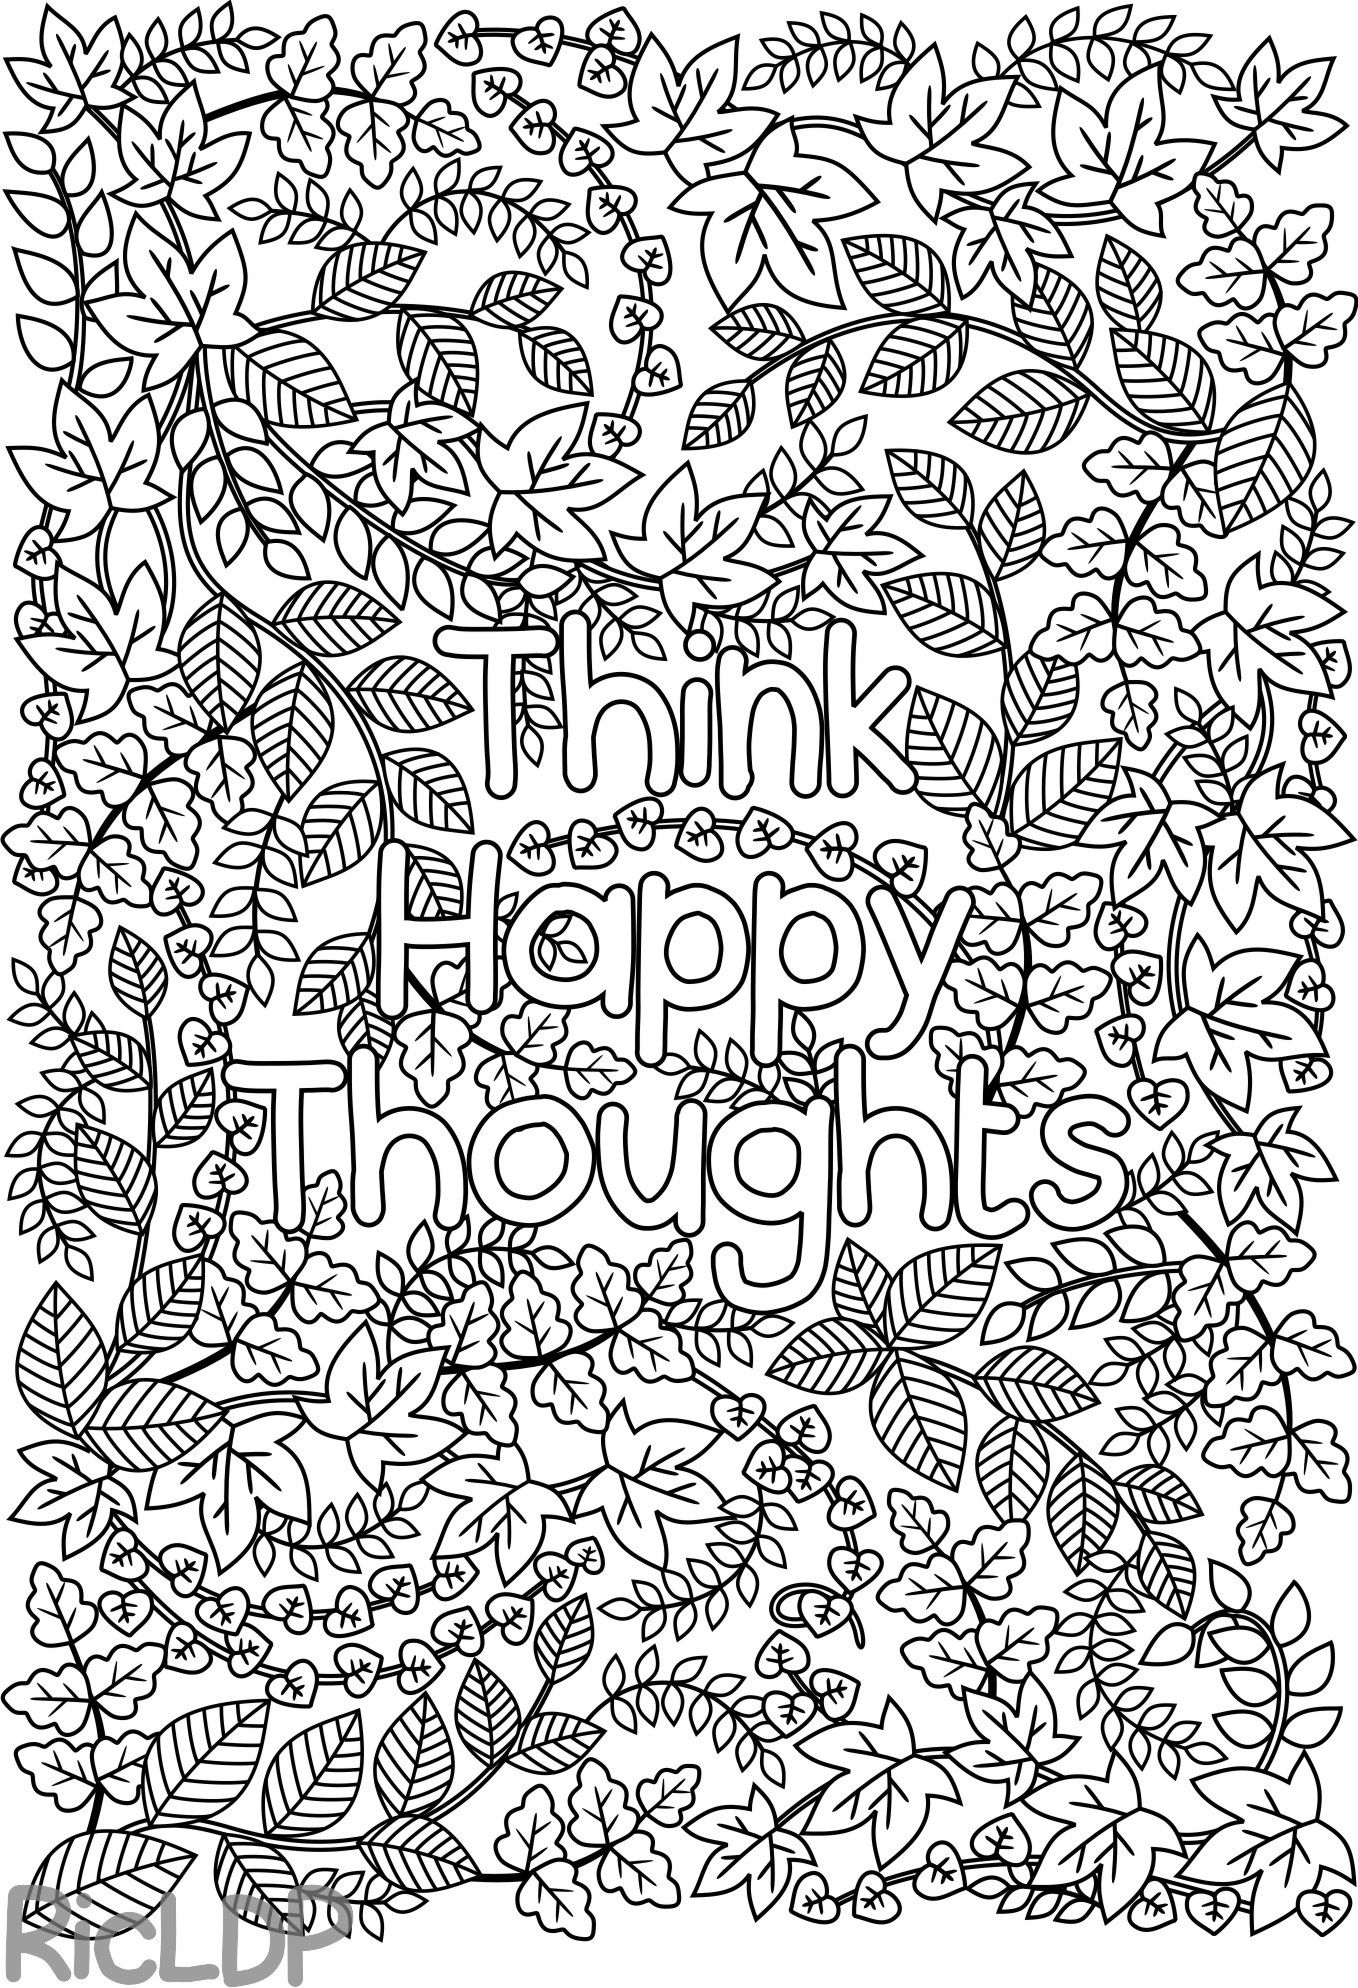 Instant Coloring Page Downloadincludes One Pdf File With